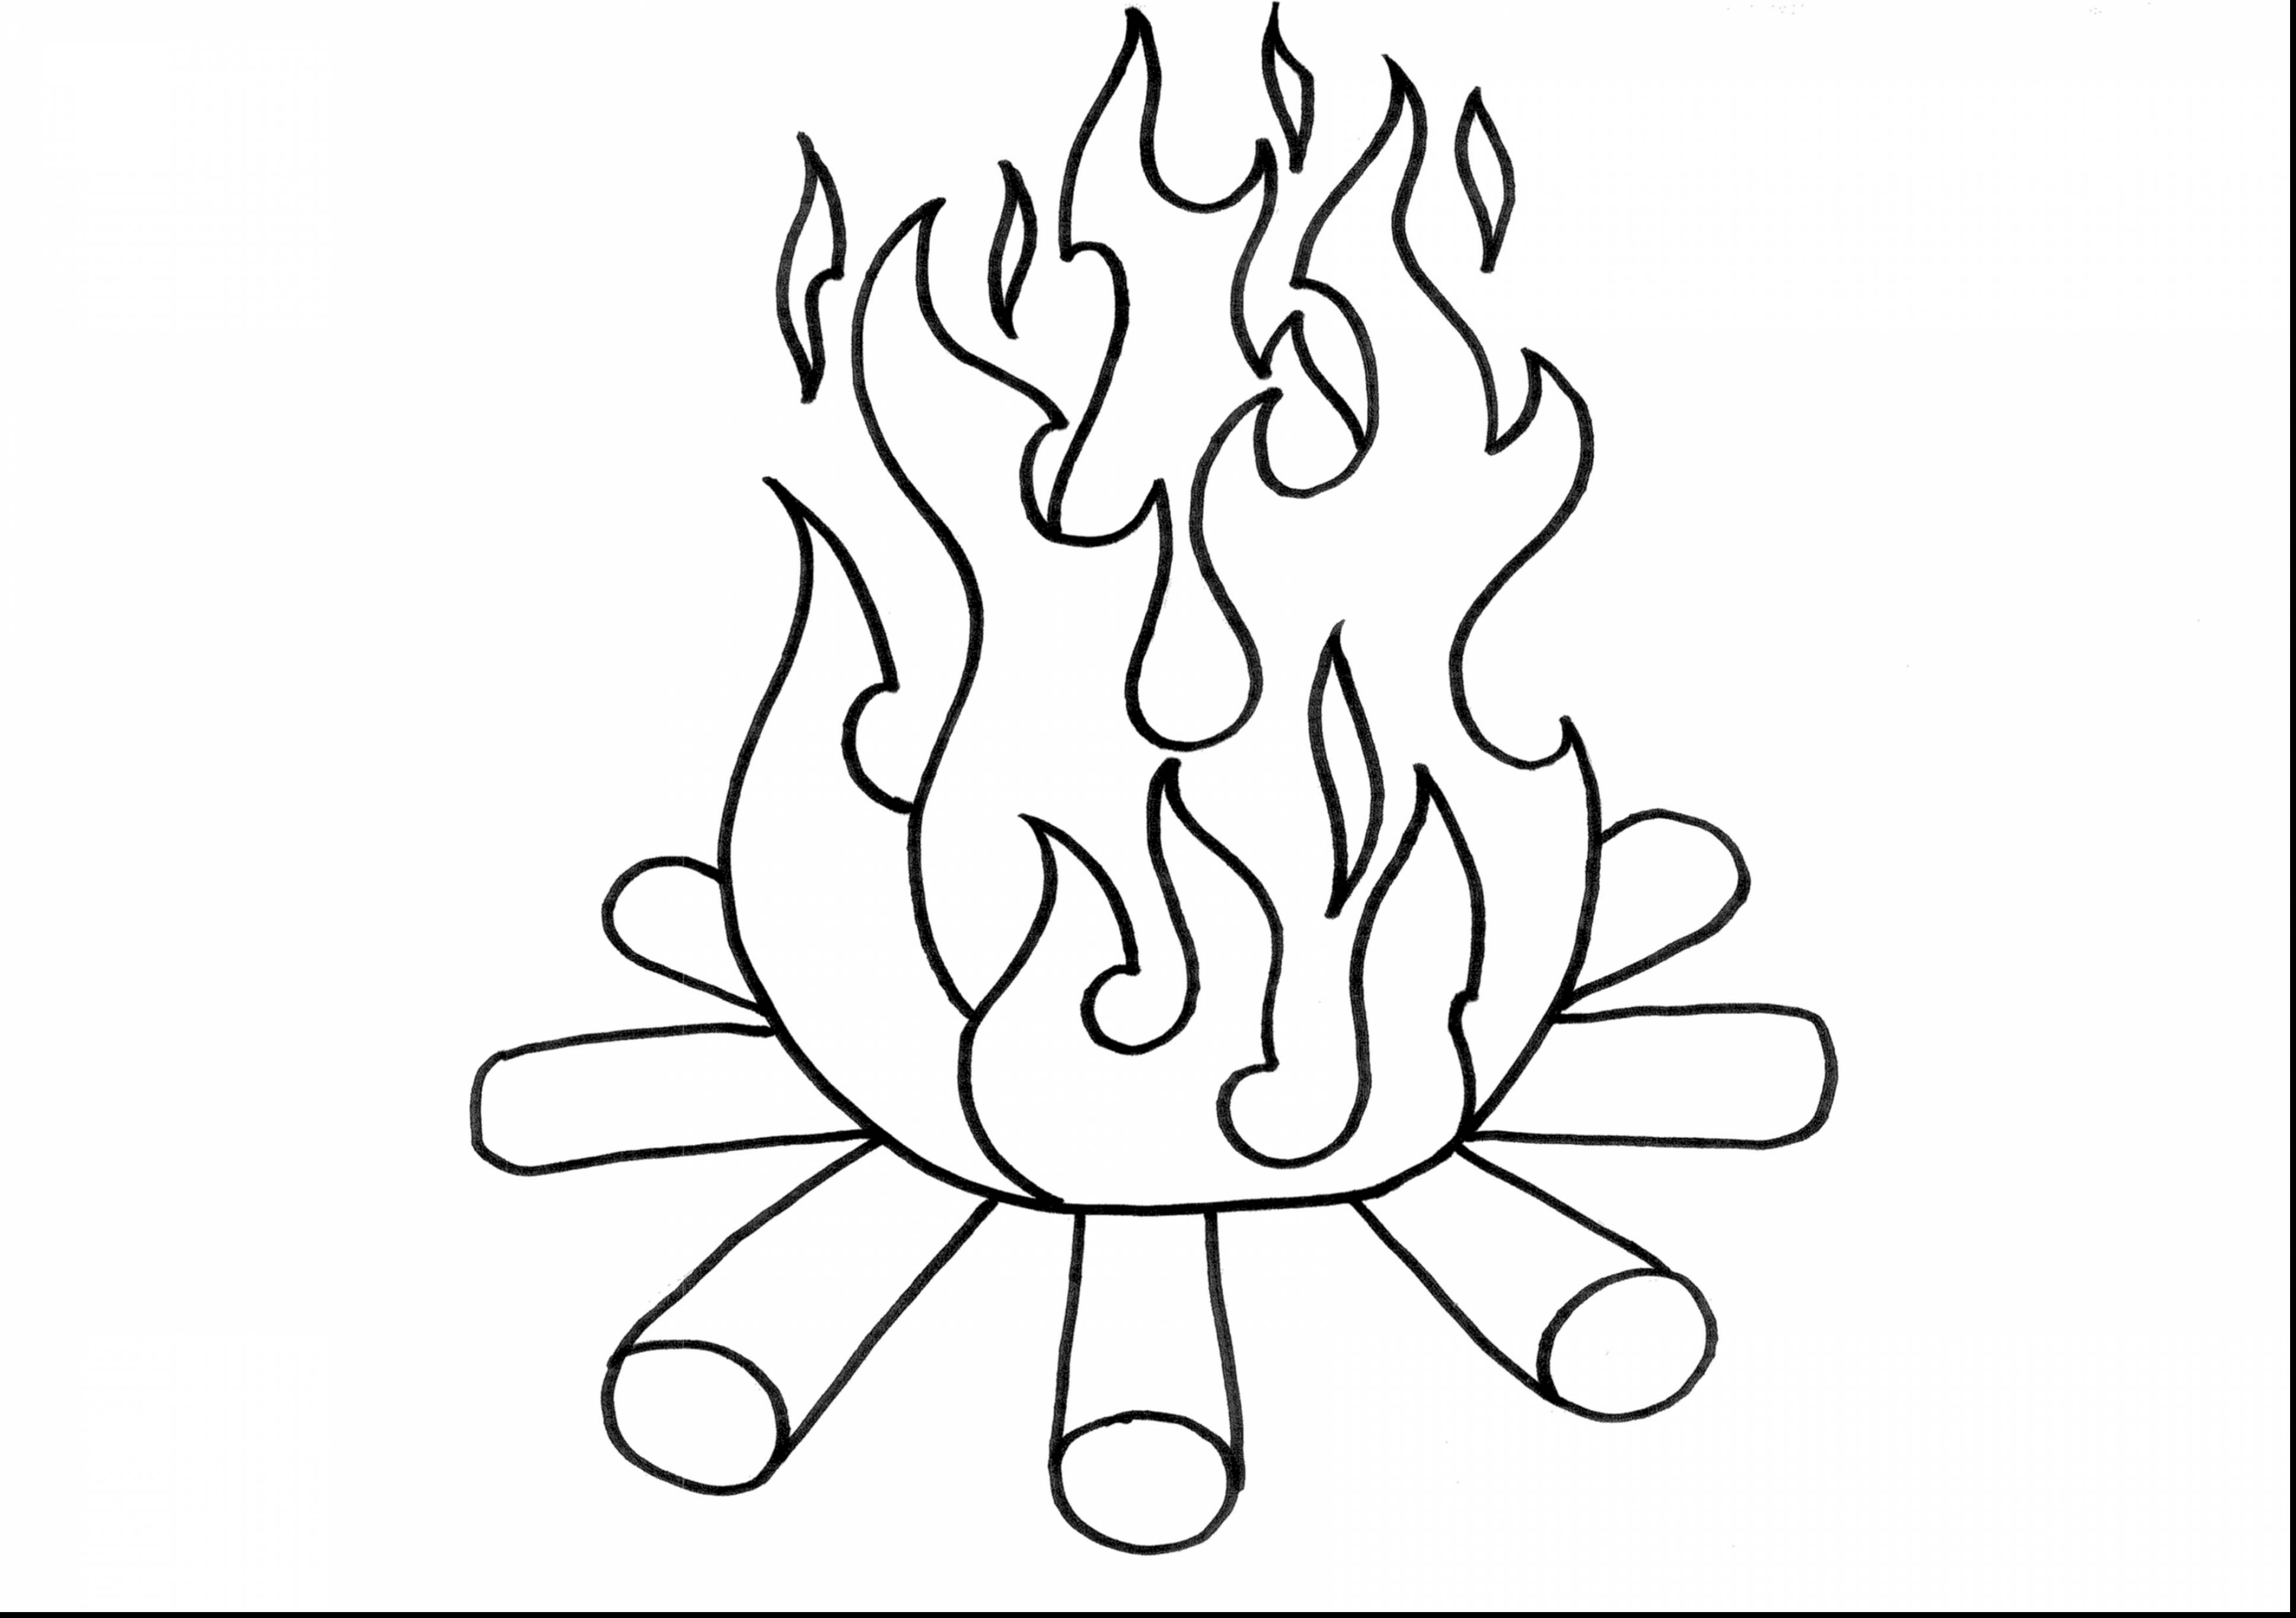 fire coloring pages fire coloring pages download and print fire coloring pages coloring fire pages